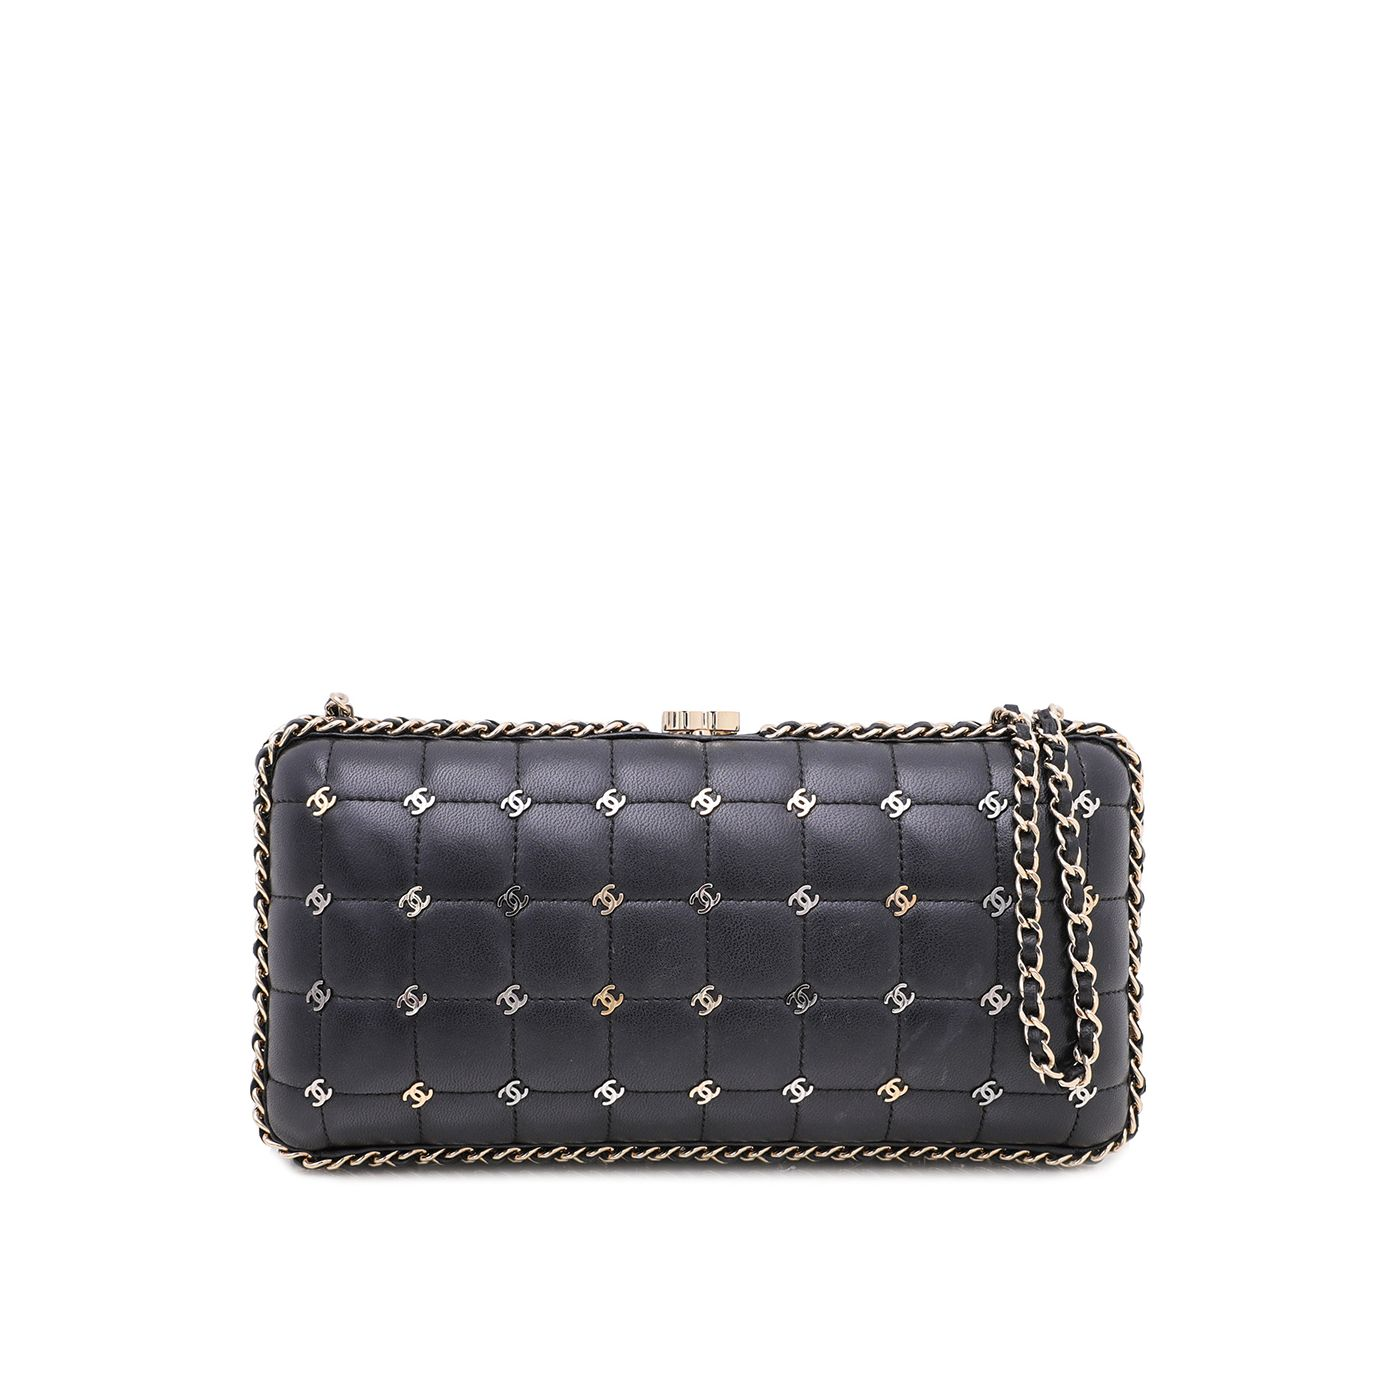 Chanel Black CC Chain Around Signature Clutch